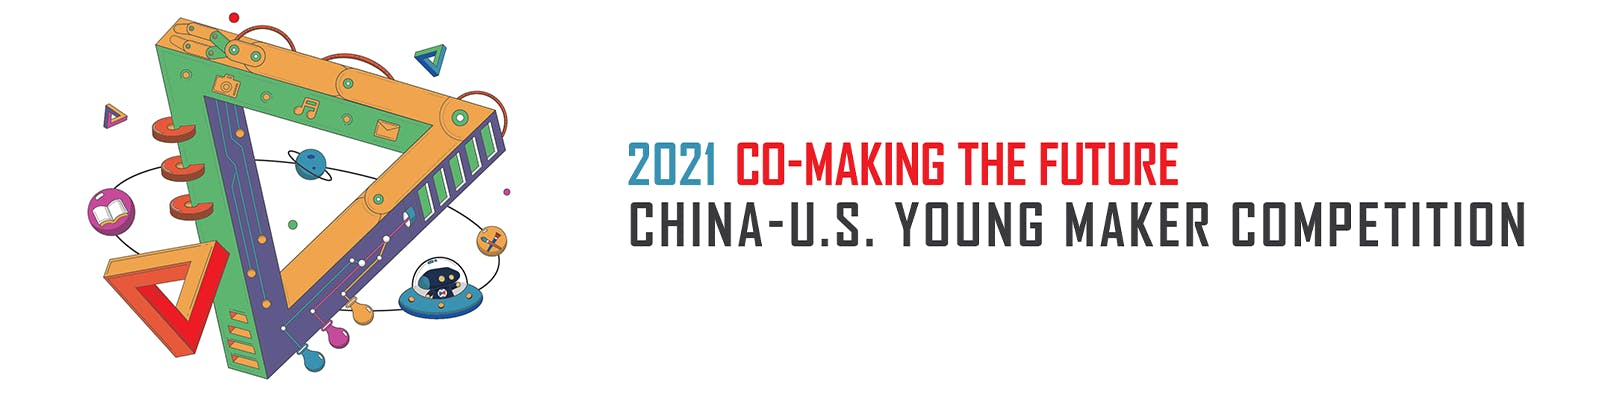 2021 China-US Young Maker Competition